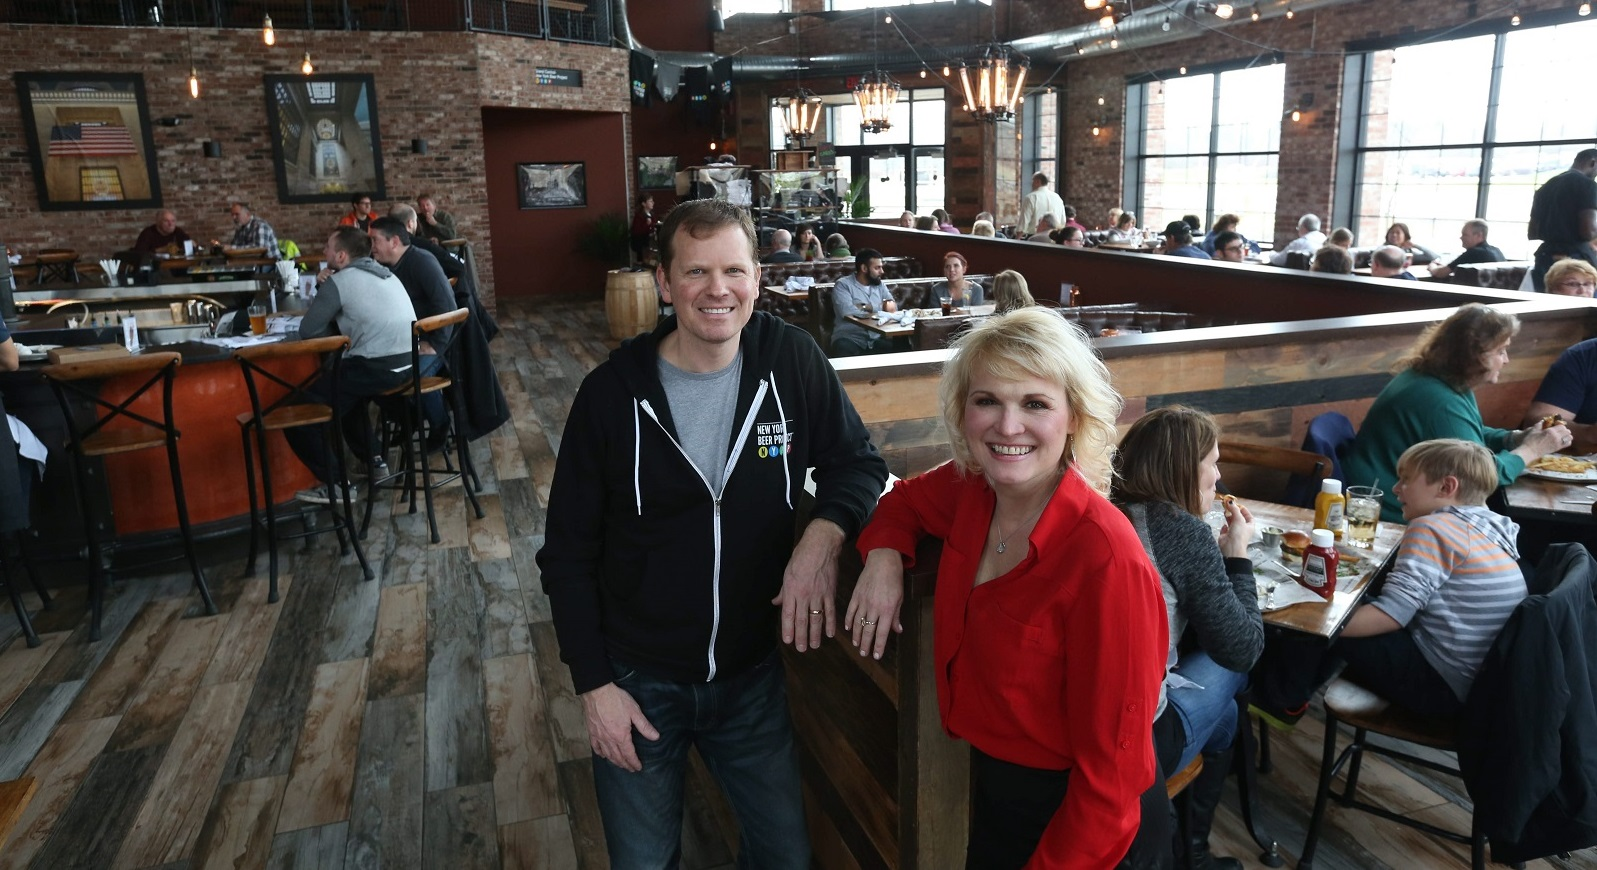 New York Beer Project owners Kelly and Kevin Krupski will have their beer at The Art of Beer. (Sharon Cantillon/Buffalo News file photo)